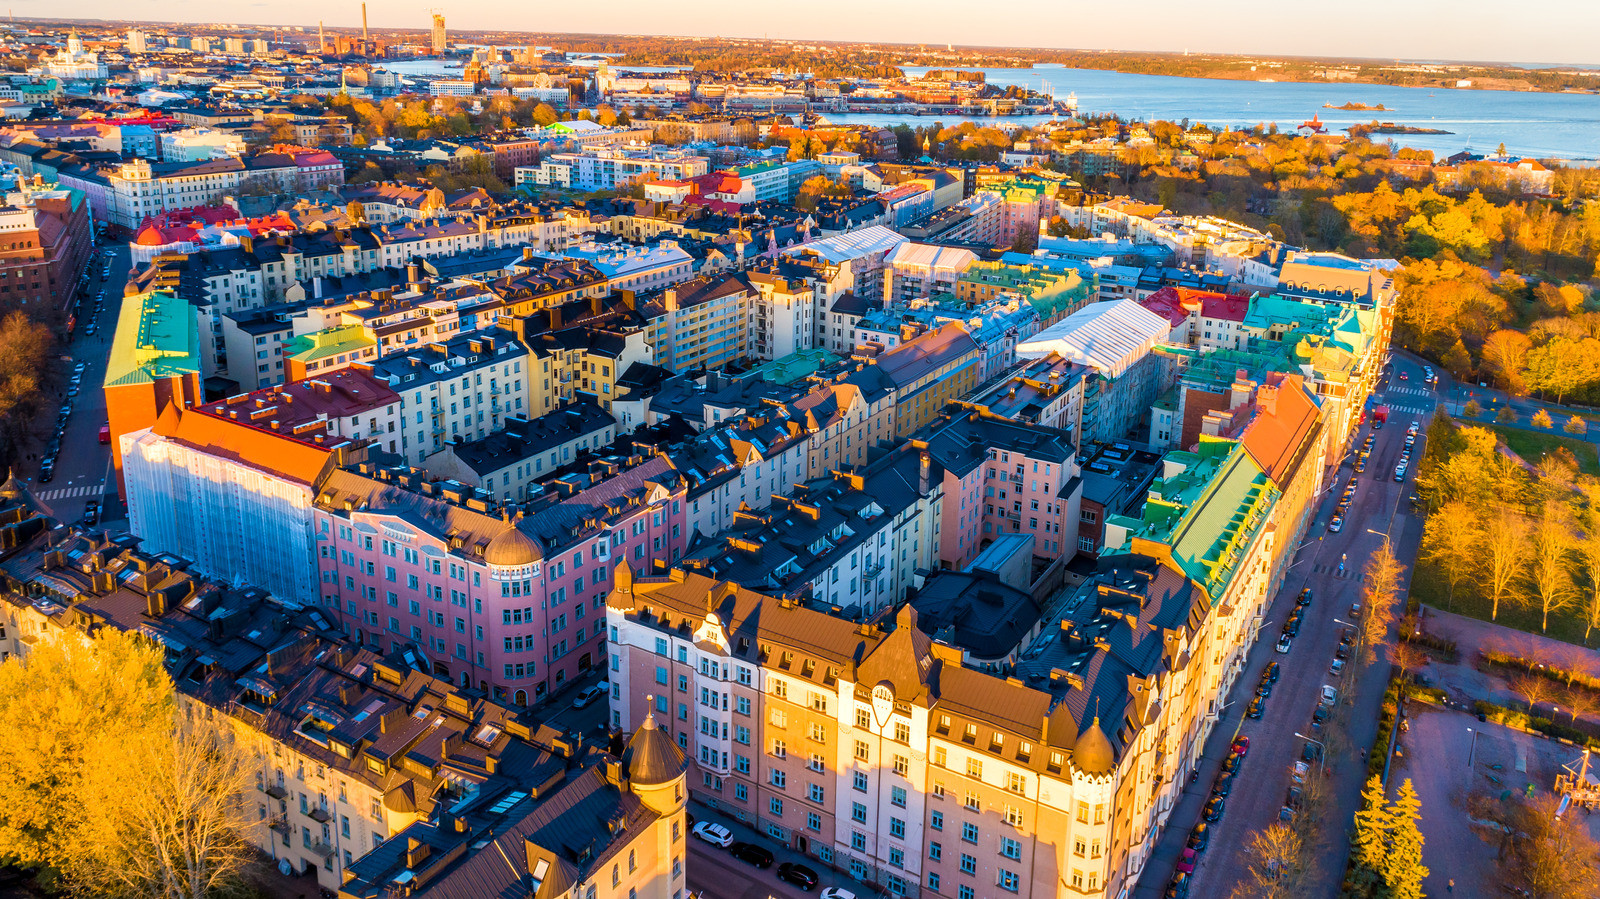 Canva - Aerial view of Colorful Helsinki